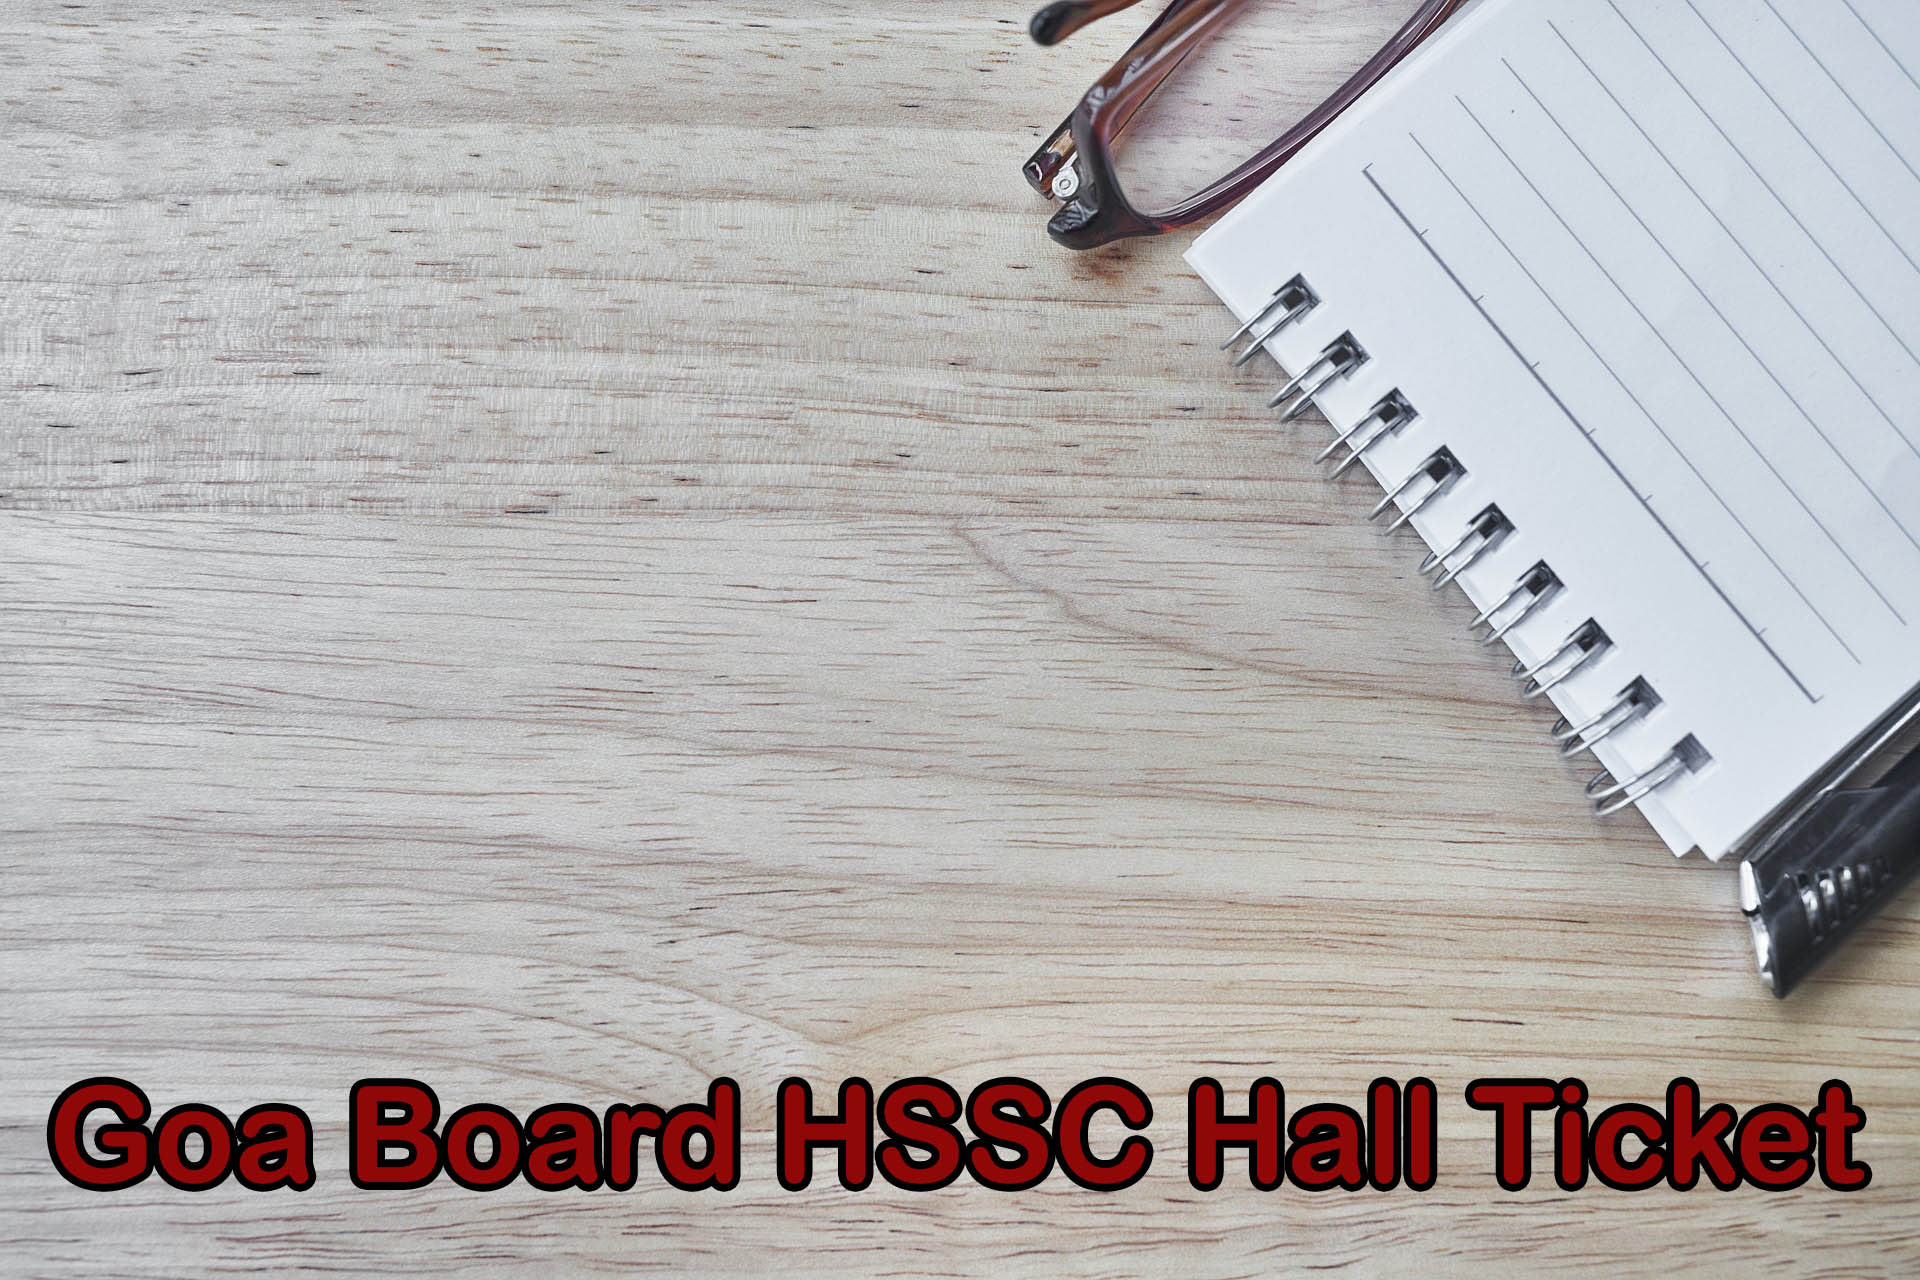 Goa Board HSSC Hall Ticket 2020 : GBSHSE 12th Admit Card 2020 Download